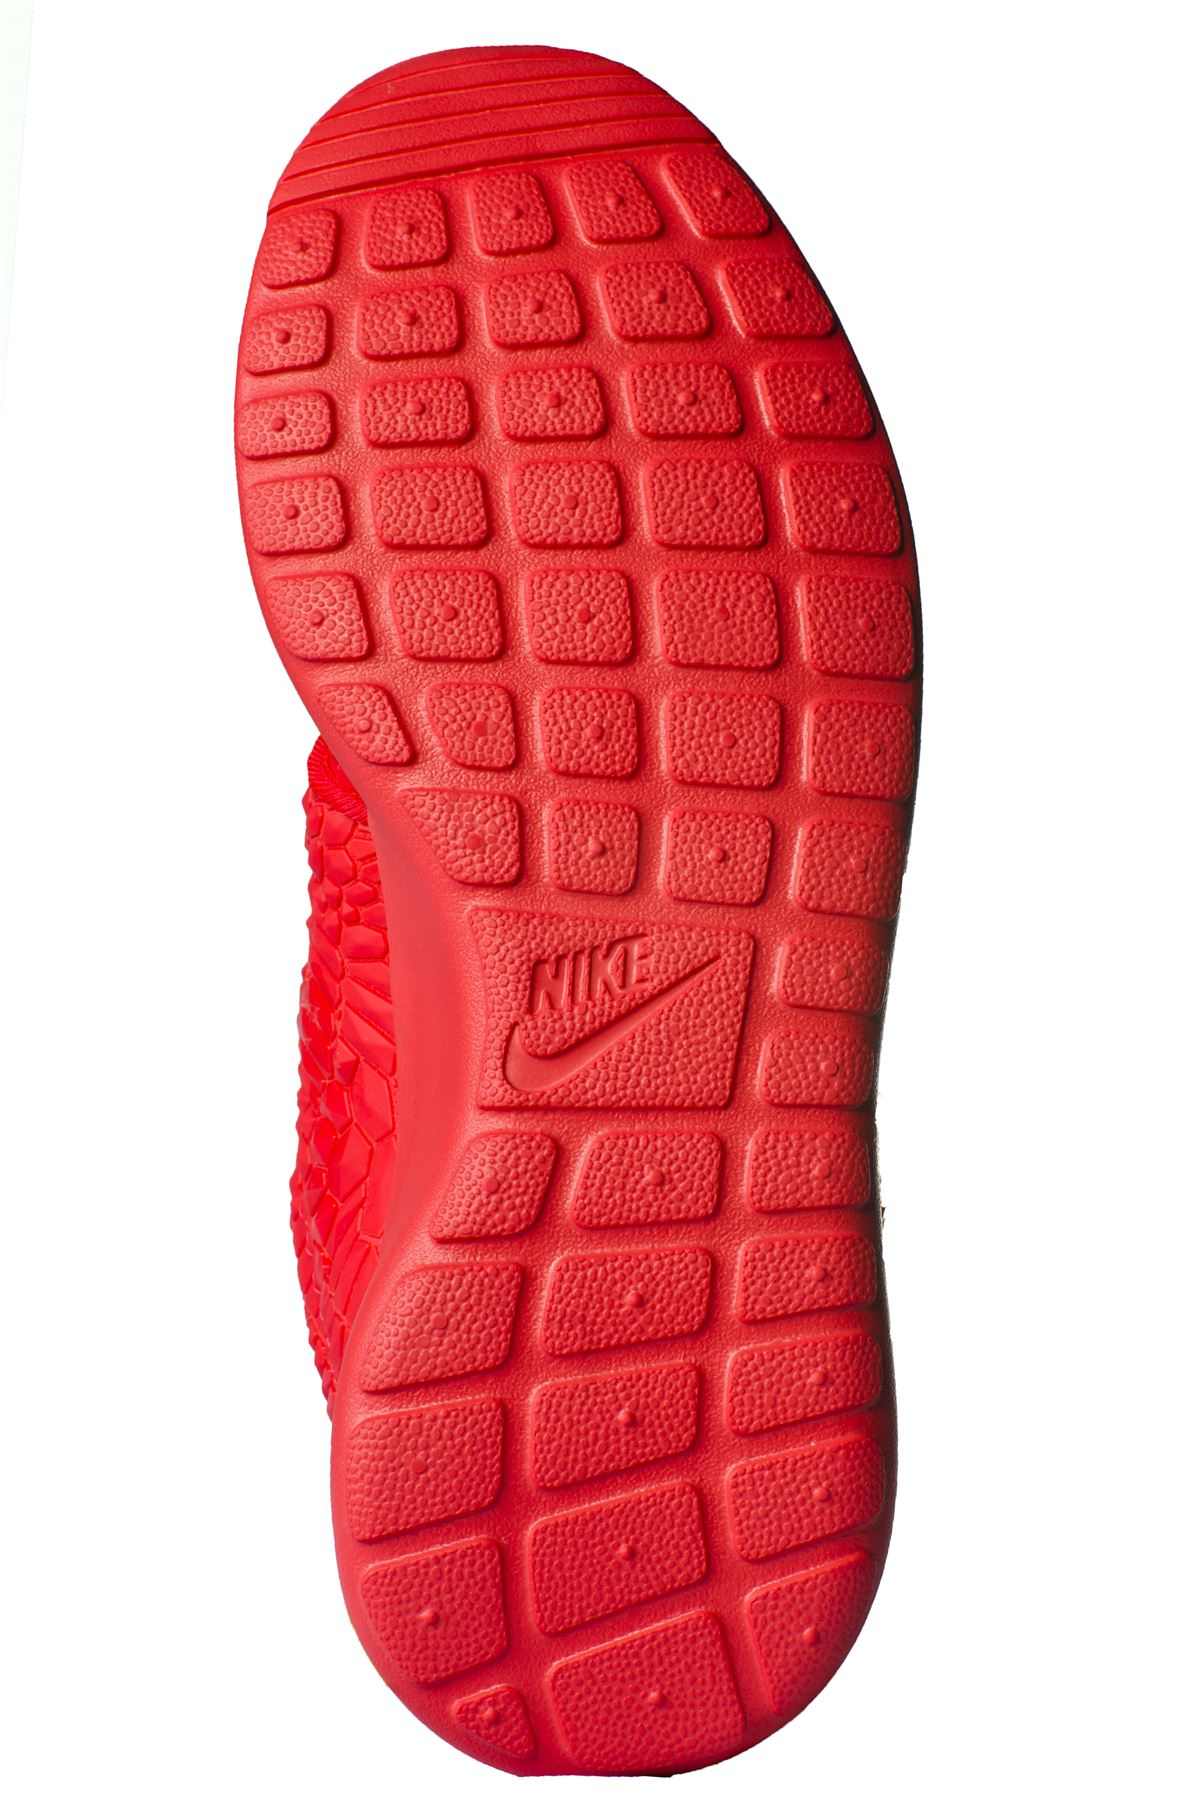 Nike roshe one dmb red womens - Description Nike Roshe One Shoes Versatile Modern Take On Running Shoe Featuring Highly Breathable Materials Lightweight Cushioning And Colourful Upper